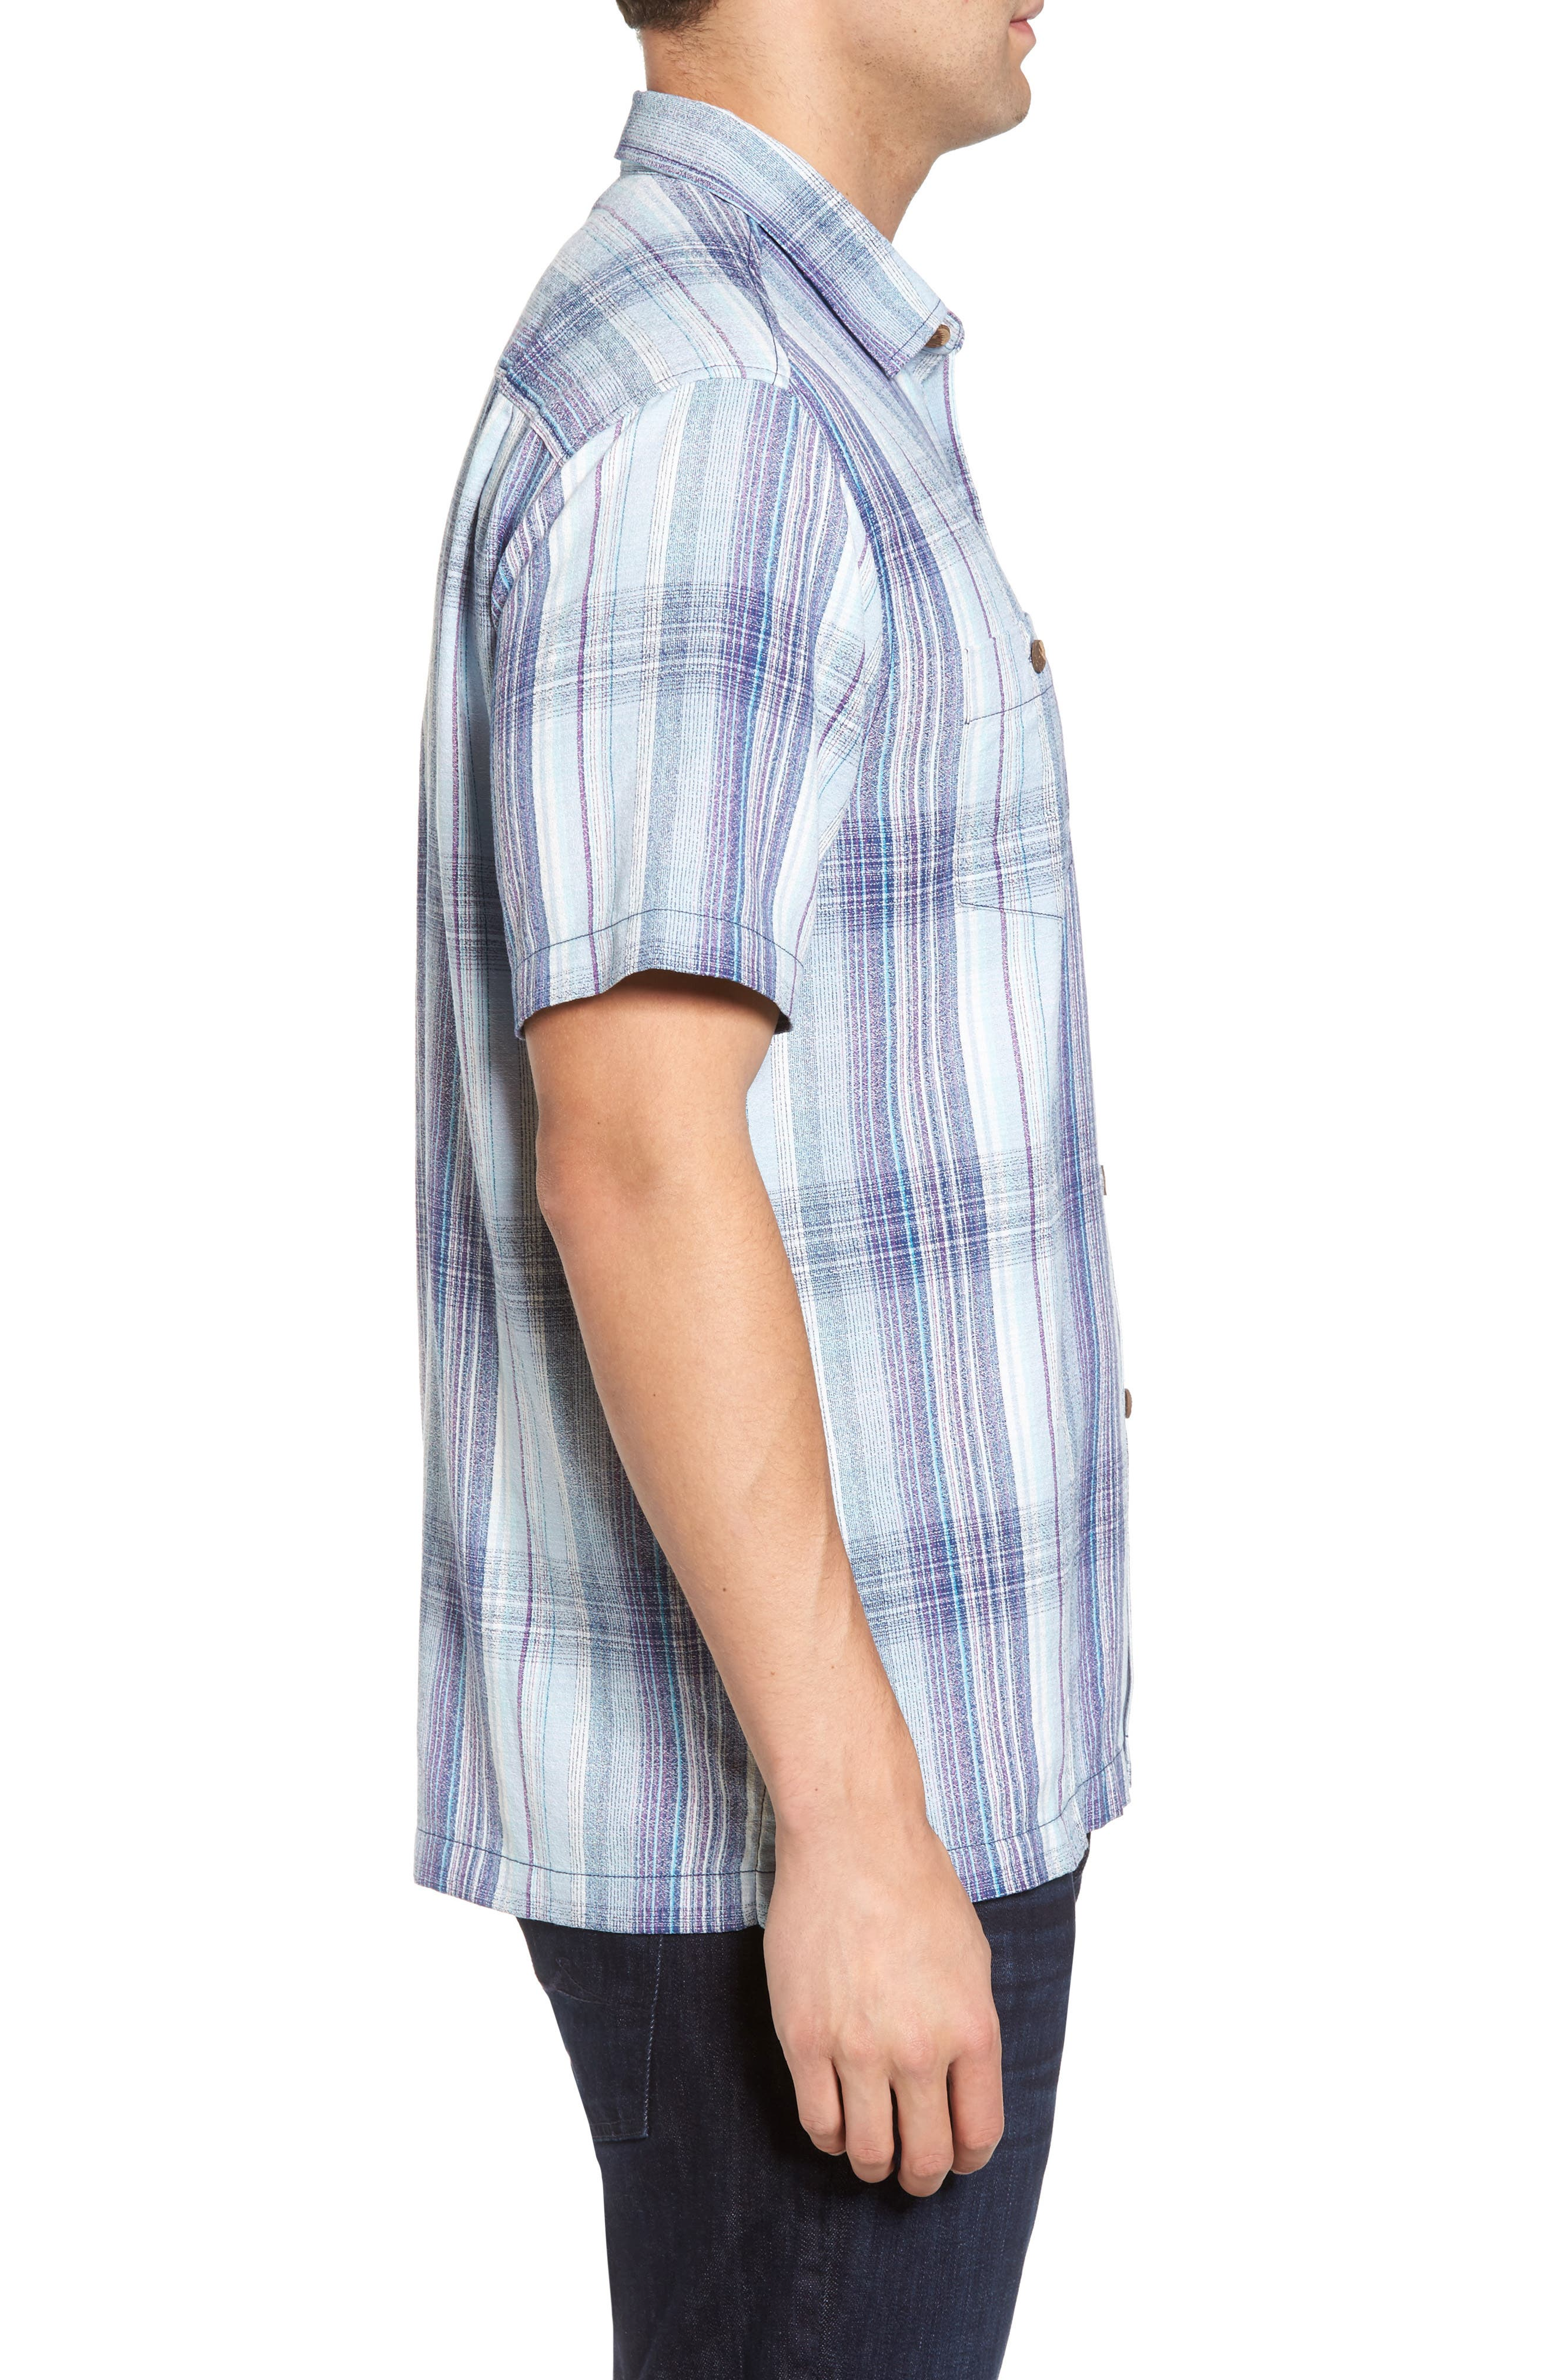 TOMMY BAHAMA,                             Banyan Cay Plaid Silk Blend Camp Shirt,                             Alternate thumbnail 3, color,                             401